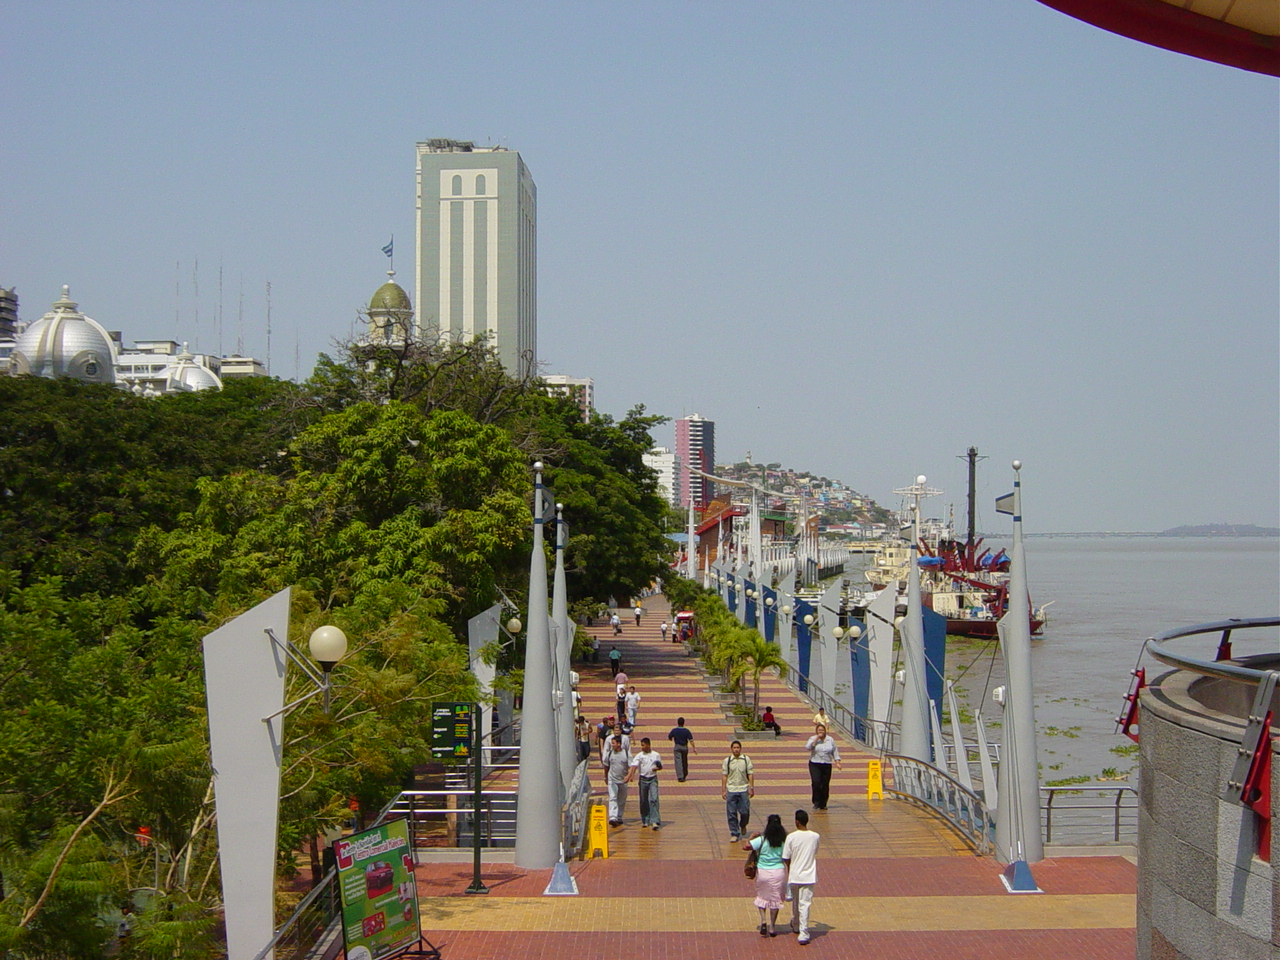 http://upload.wikimedia.org/wikipedia/commons/6/69/Guayaquil_Malecon2000.JPG?uselang=fr